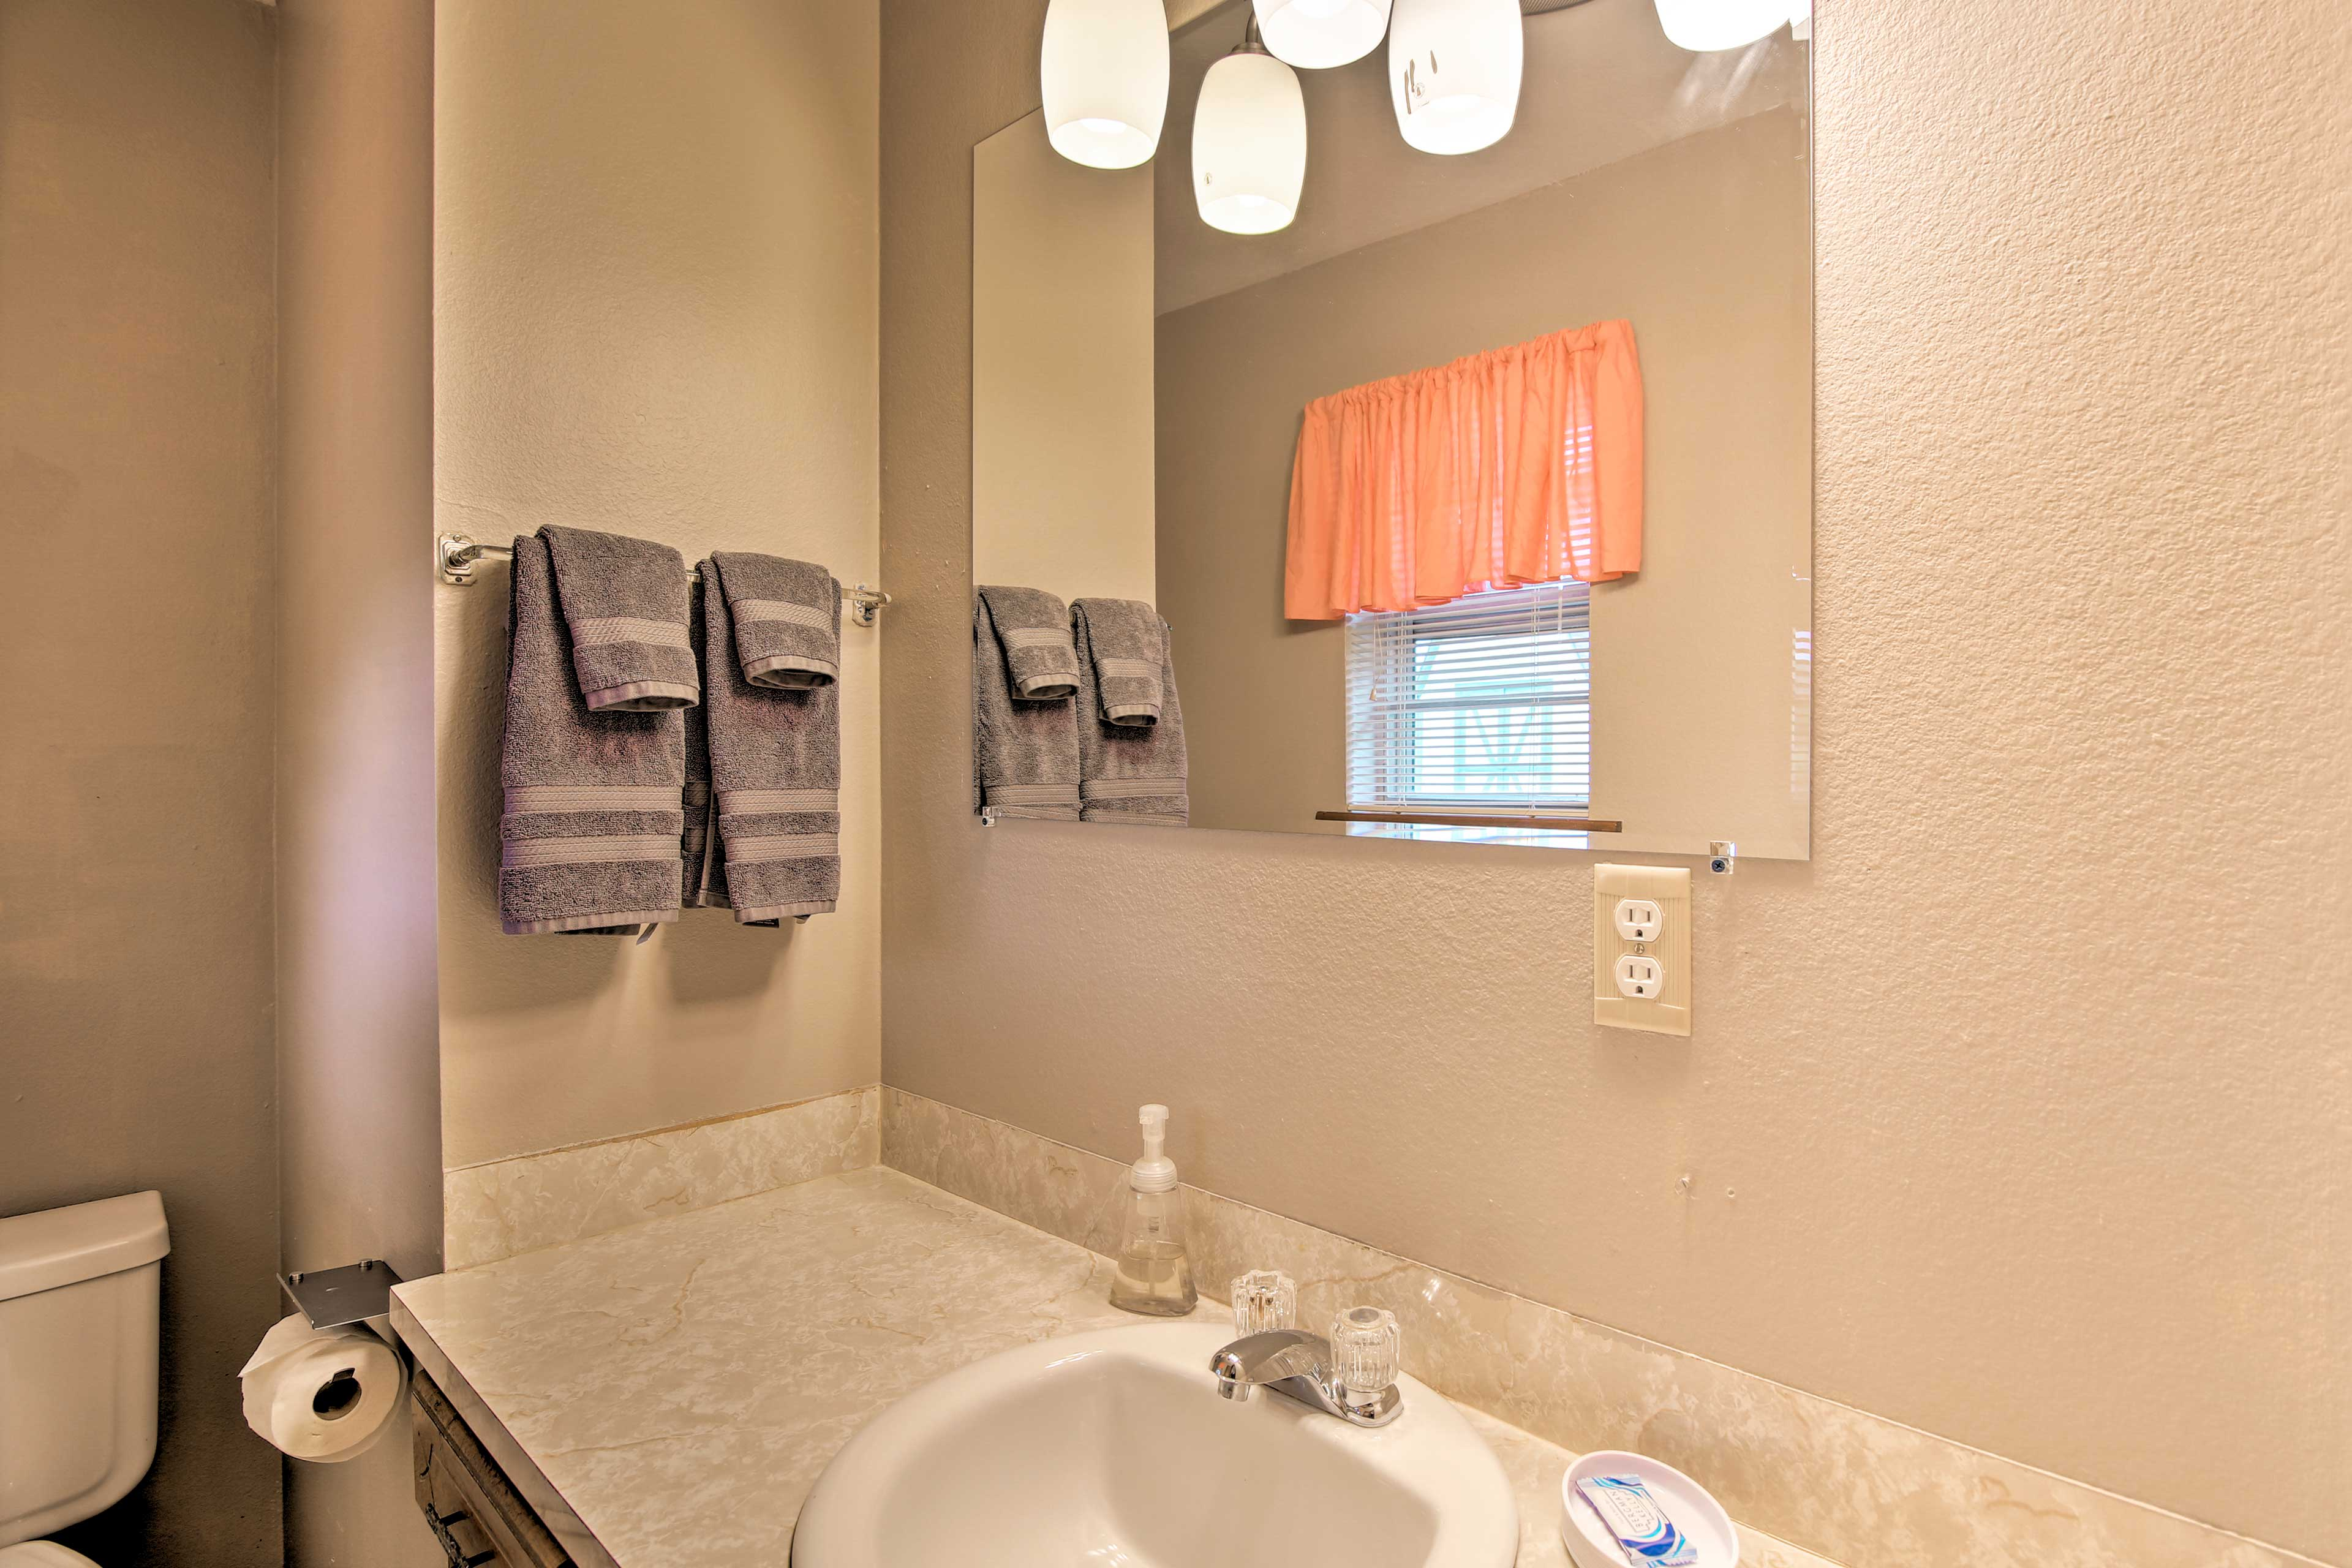 A second full bathroom provides full linens and towels.